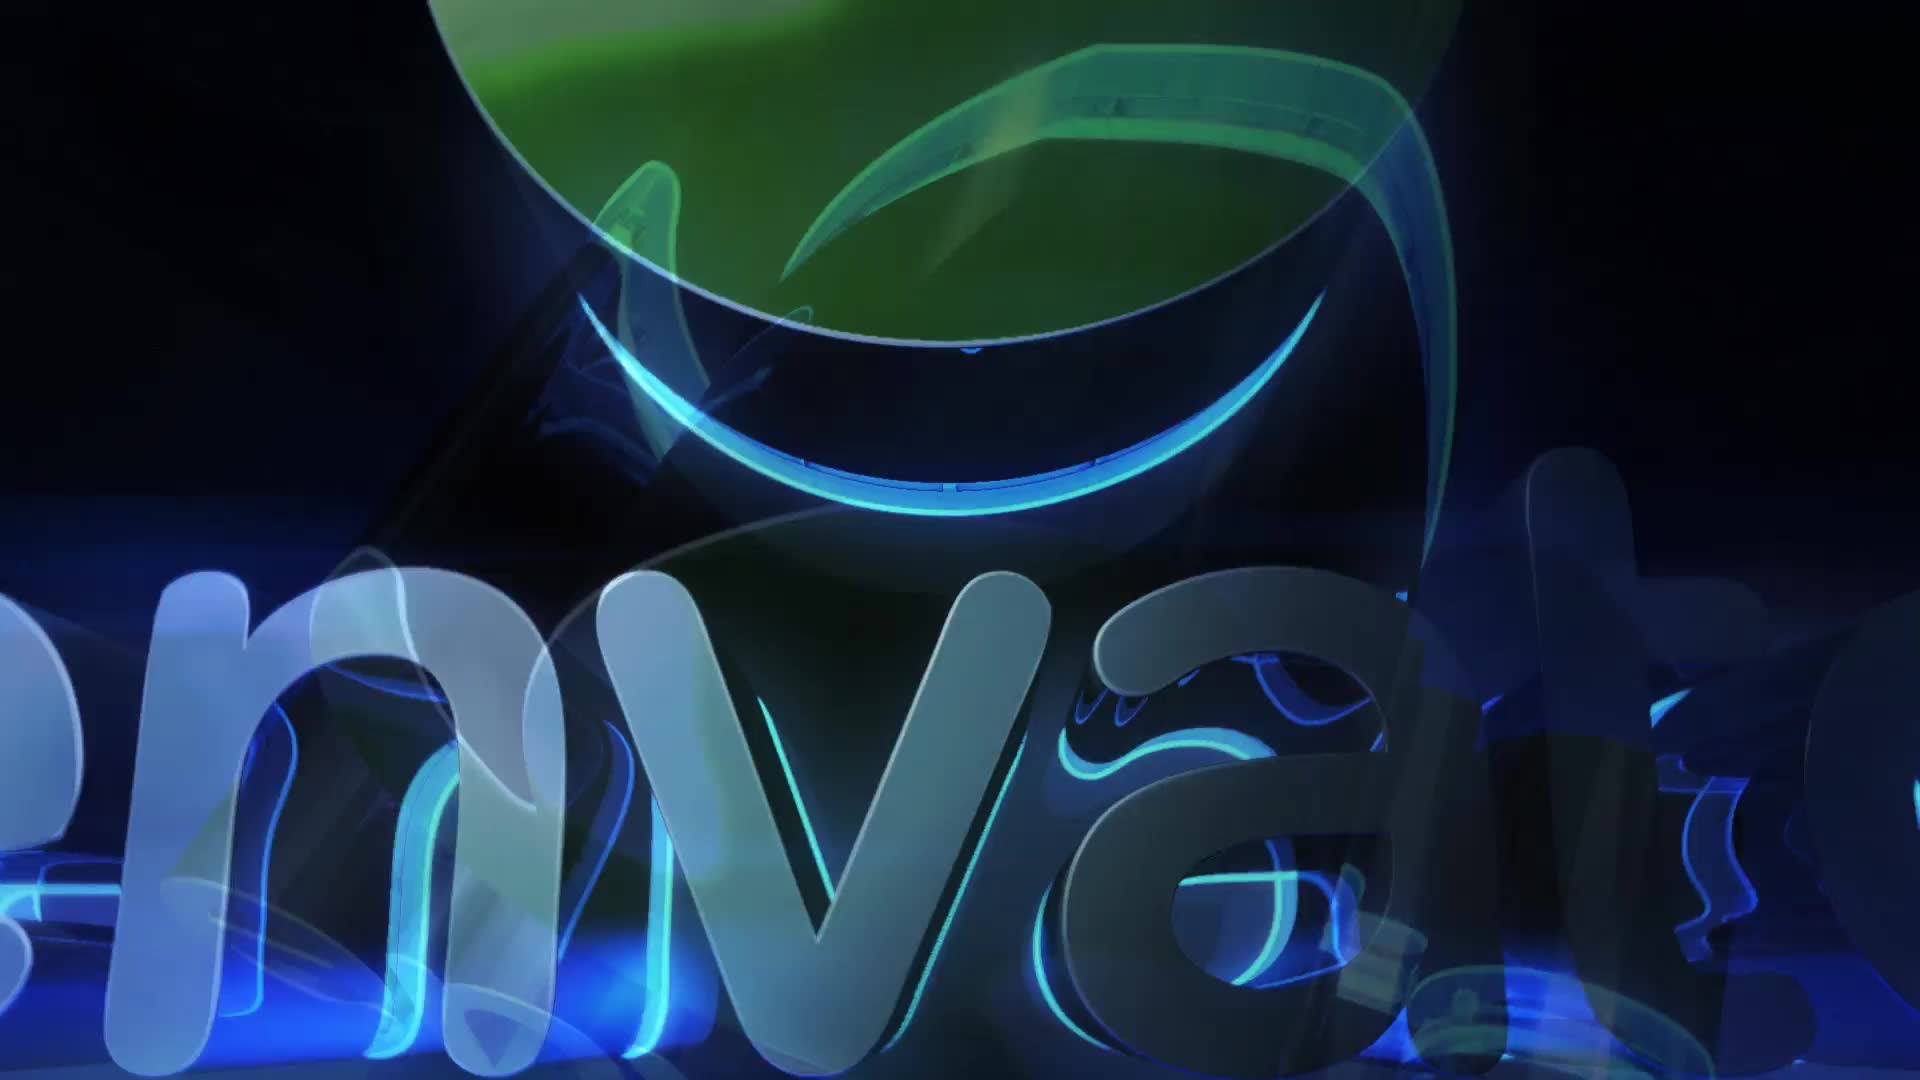 Backlit 3D Logo Videohive 30902997 After Effects Image 2